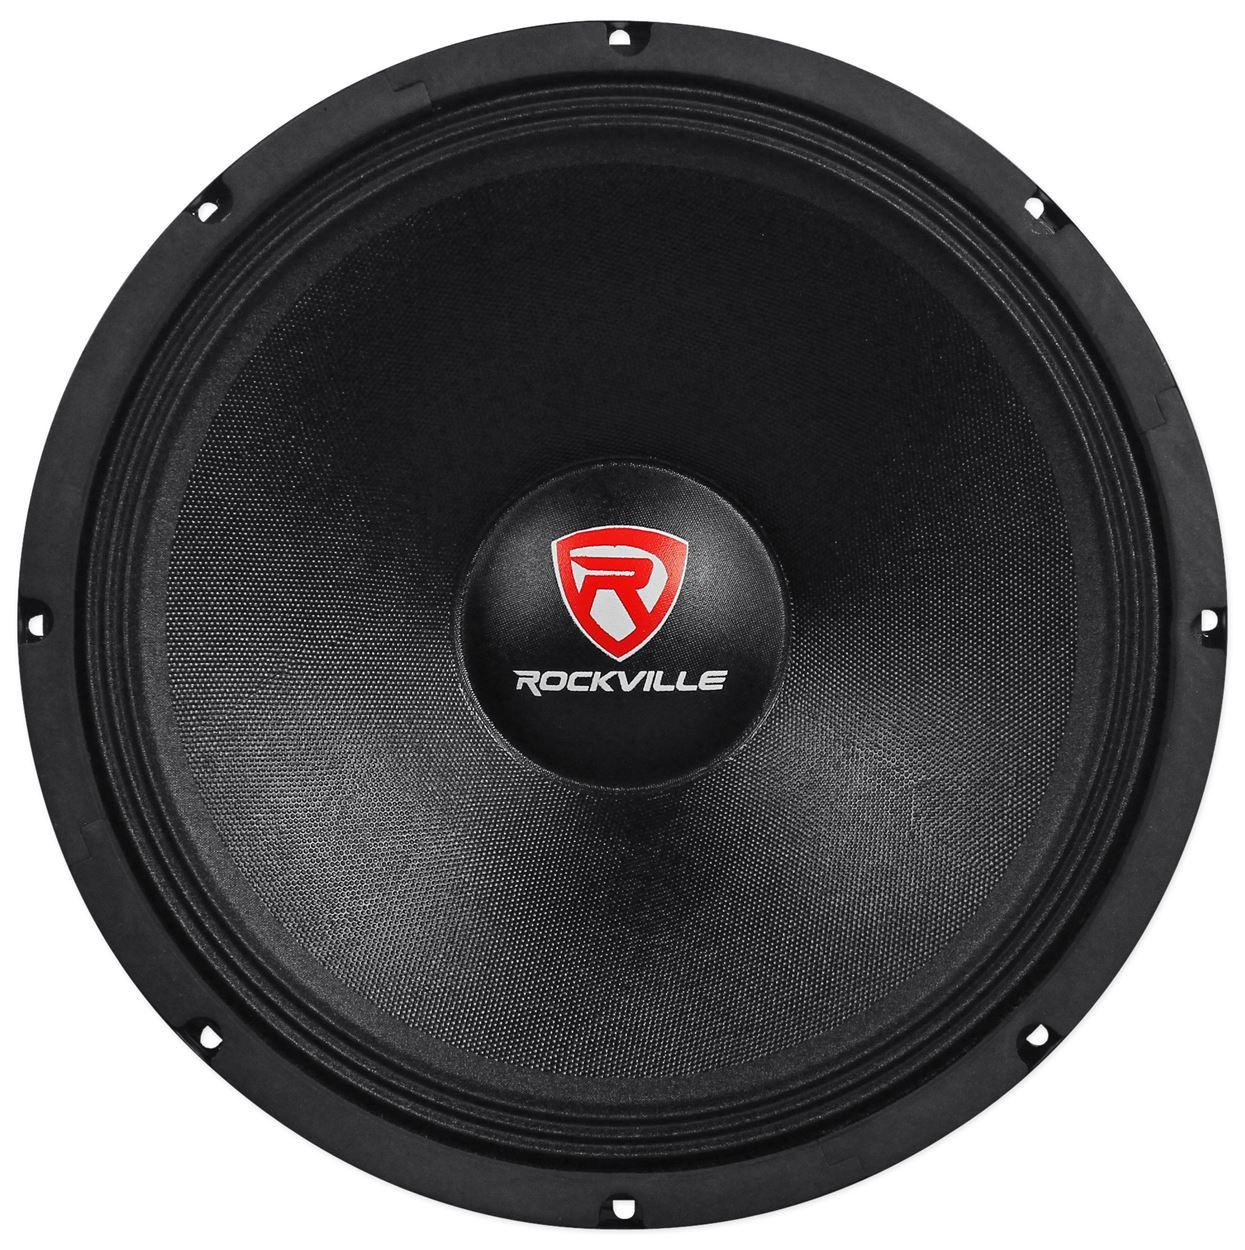 "Amazon.com: Rockville RVP15W4 1000 Watt 15"" Raw DJ"